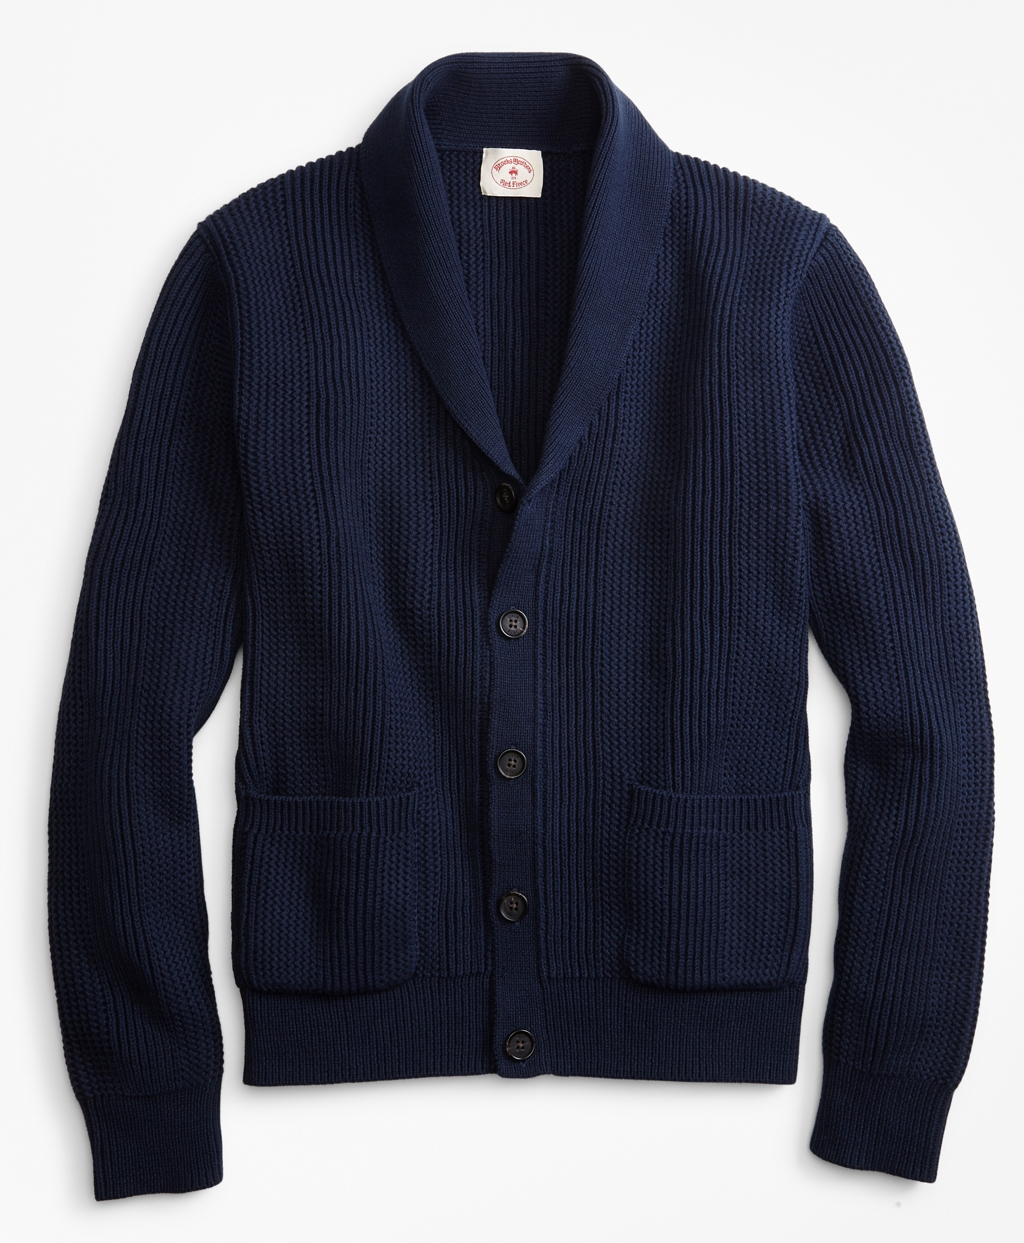 60s 70s Men's Jackets & Sweaters Brooks Brothers Mens Shawl-Collar Button-Front Cardigan $98.50 AT vintagedancer.com